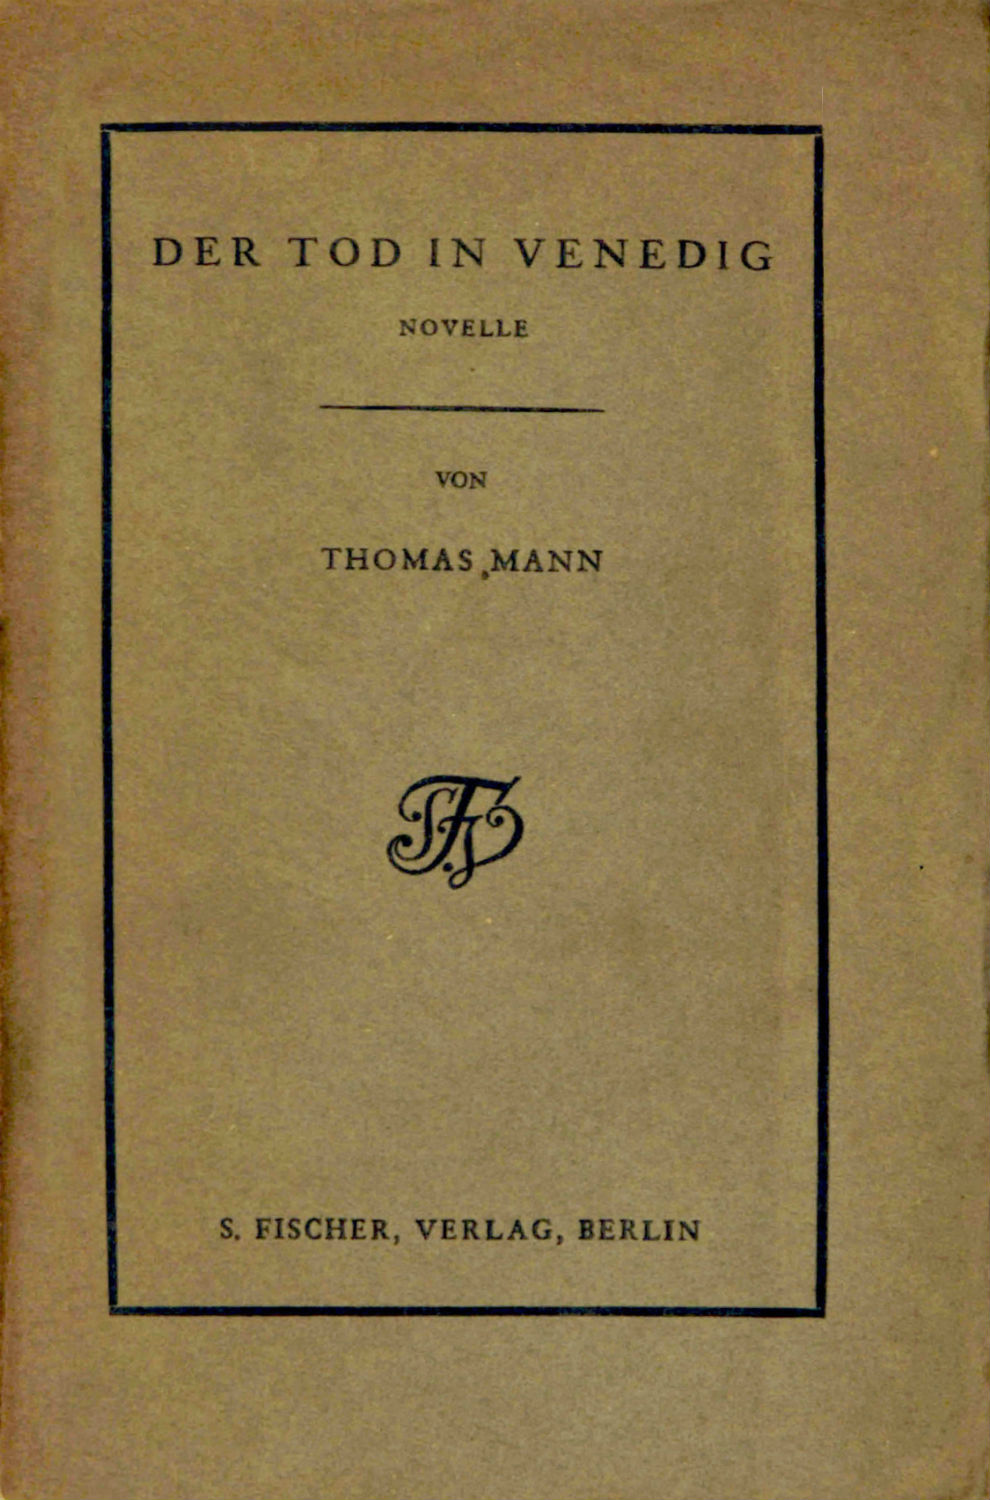 Thomas Mann, Death in Venice [Berlin; 1912] - Hey, one of the foundational works of European modernism is a pretty good read, have you heard?This was the question that kept recurring to me as I read this novella, a chapter a night, and thought about tweeting some banal and obvious praise. This is, to my recollection, the first time I've read anything by Thomas Mann, who has always seemed slightly forbidding: the magisterial bulk of Buddenbrooks, The Magic Mountain, and Doctor Faustus had me shy away for many years. It's not always the case that the Great Artists of the twentieth century, once you actually start to sit with them, turn out to be as suavely limpid as the best genre fiction, but in this case it was a delightful surprise.Many competent cultural historians have already drawn lines between the fracturing of the nineteenth-century Western consensus and Mann's concerns here: homoeroticism,